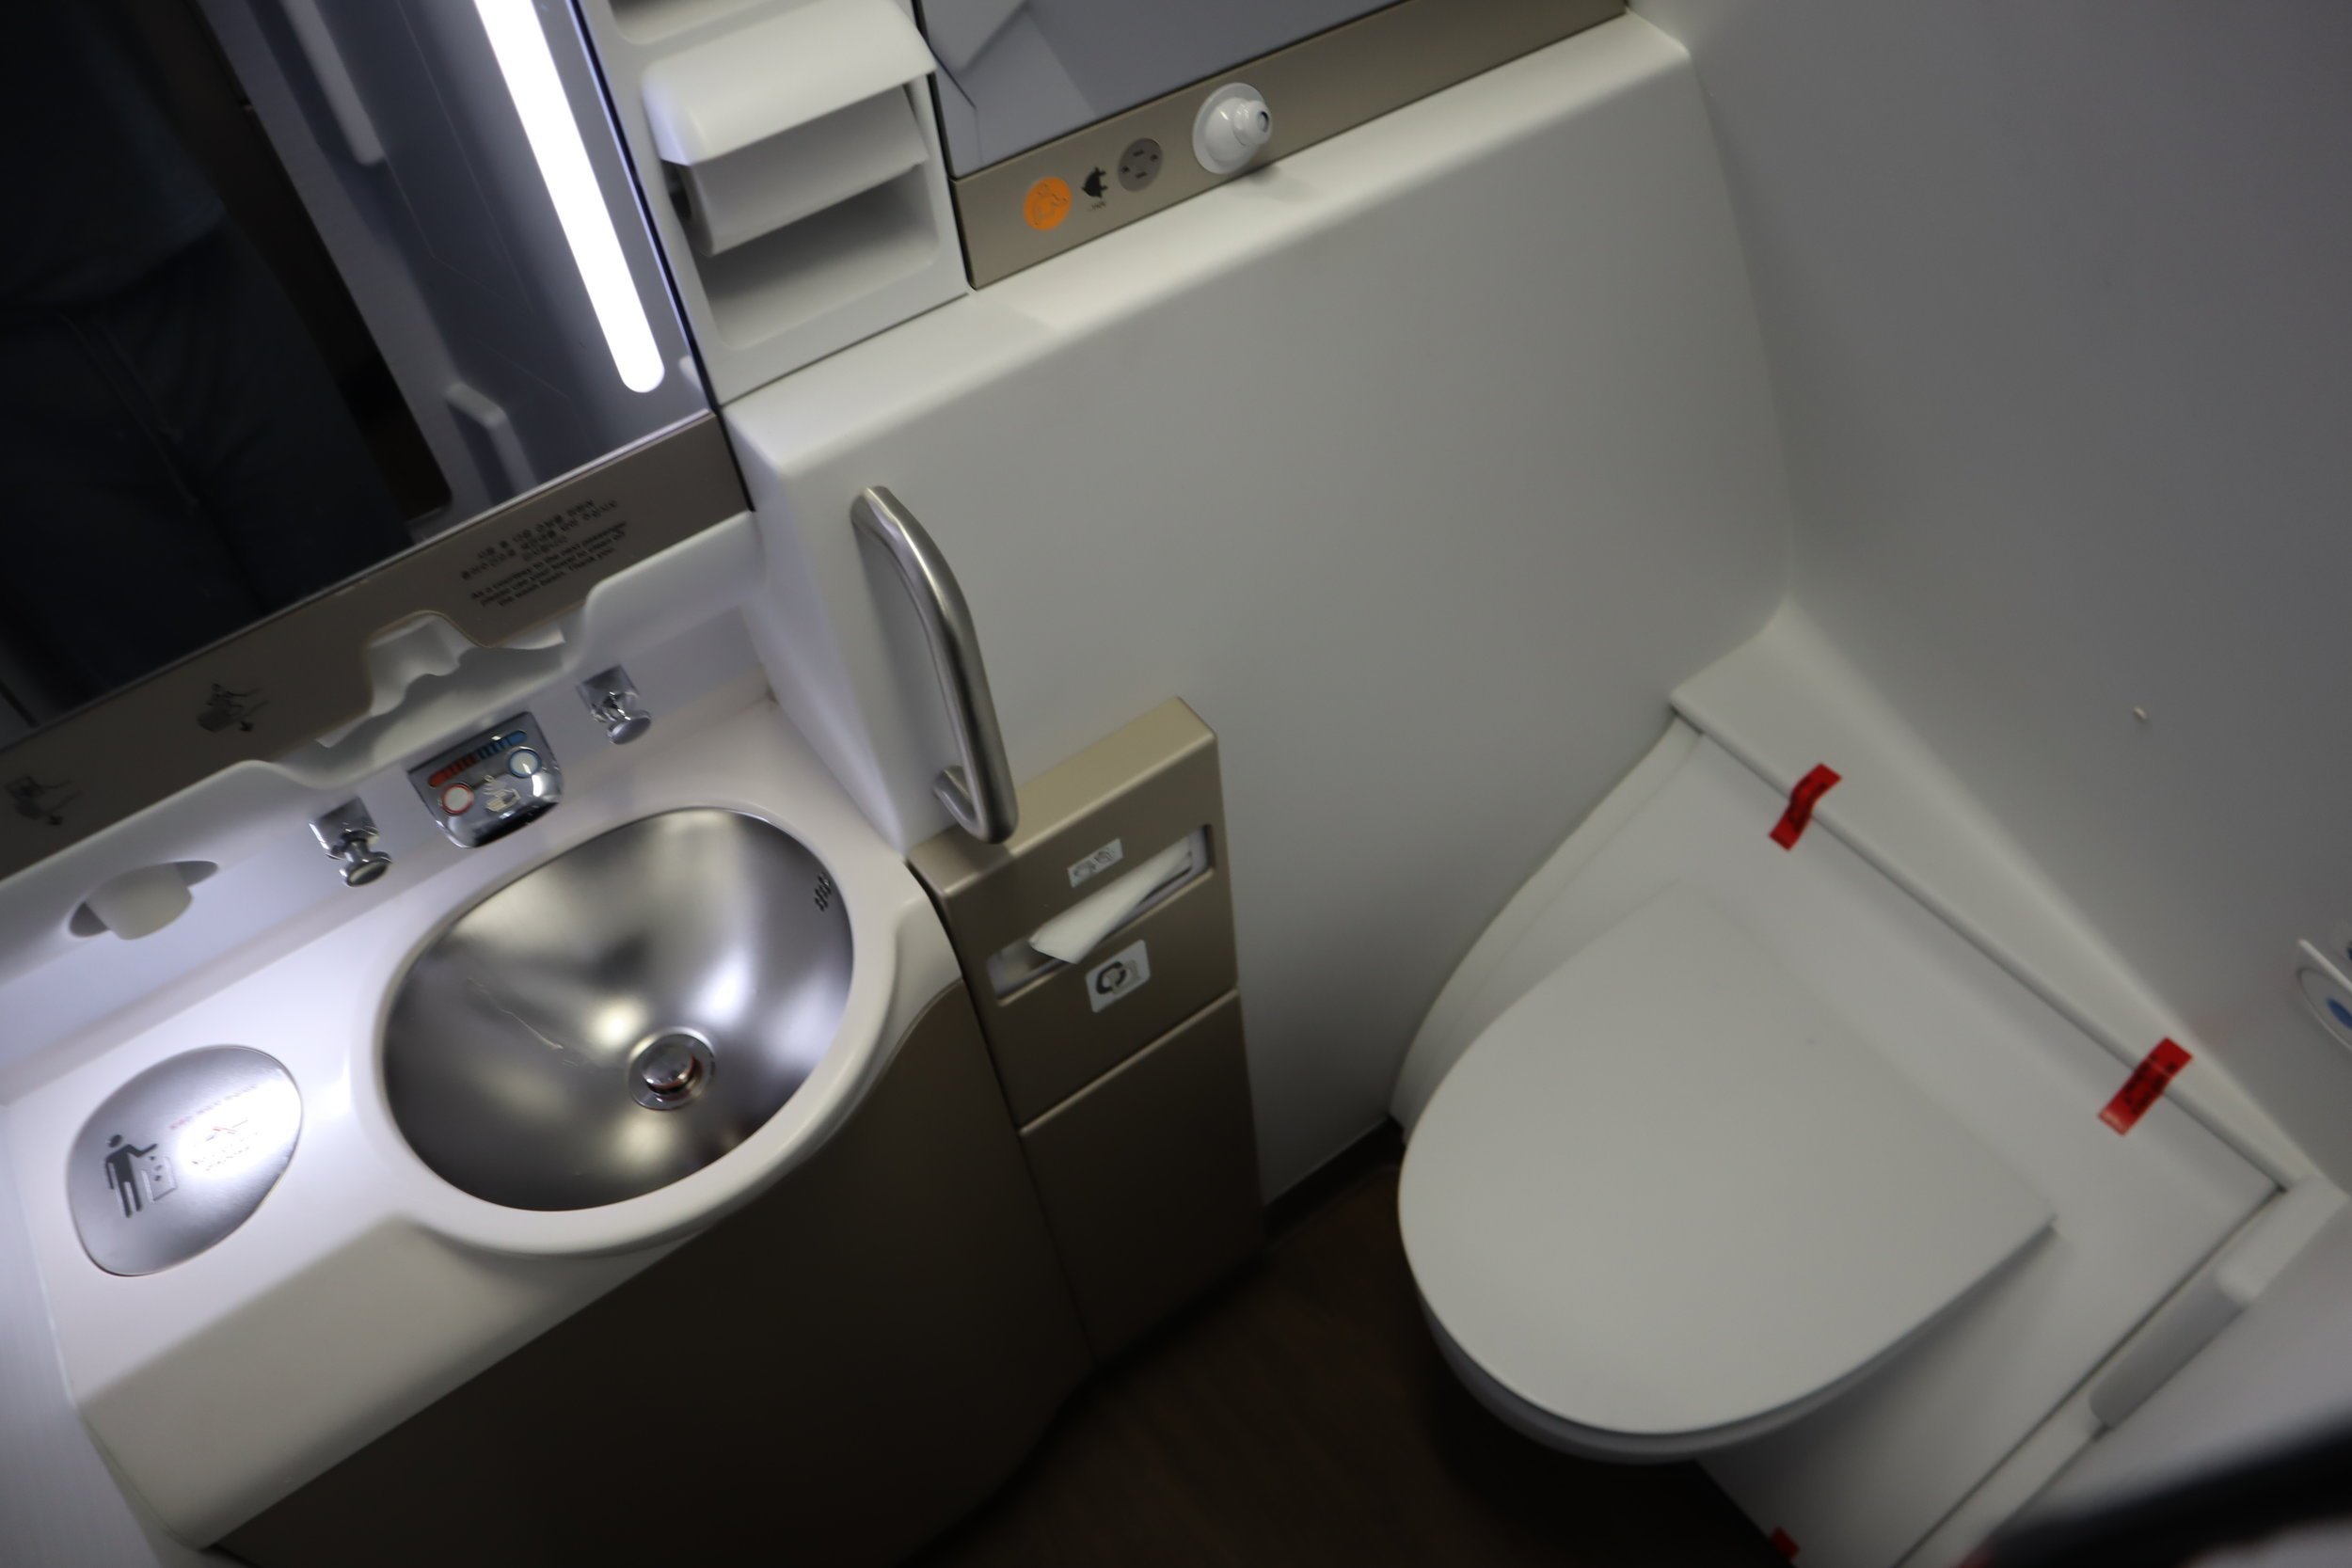 Asiana Airlines First Class – Left-side bathroom